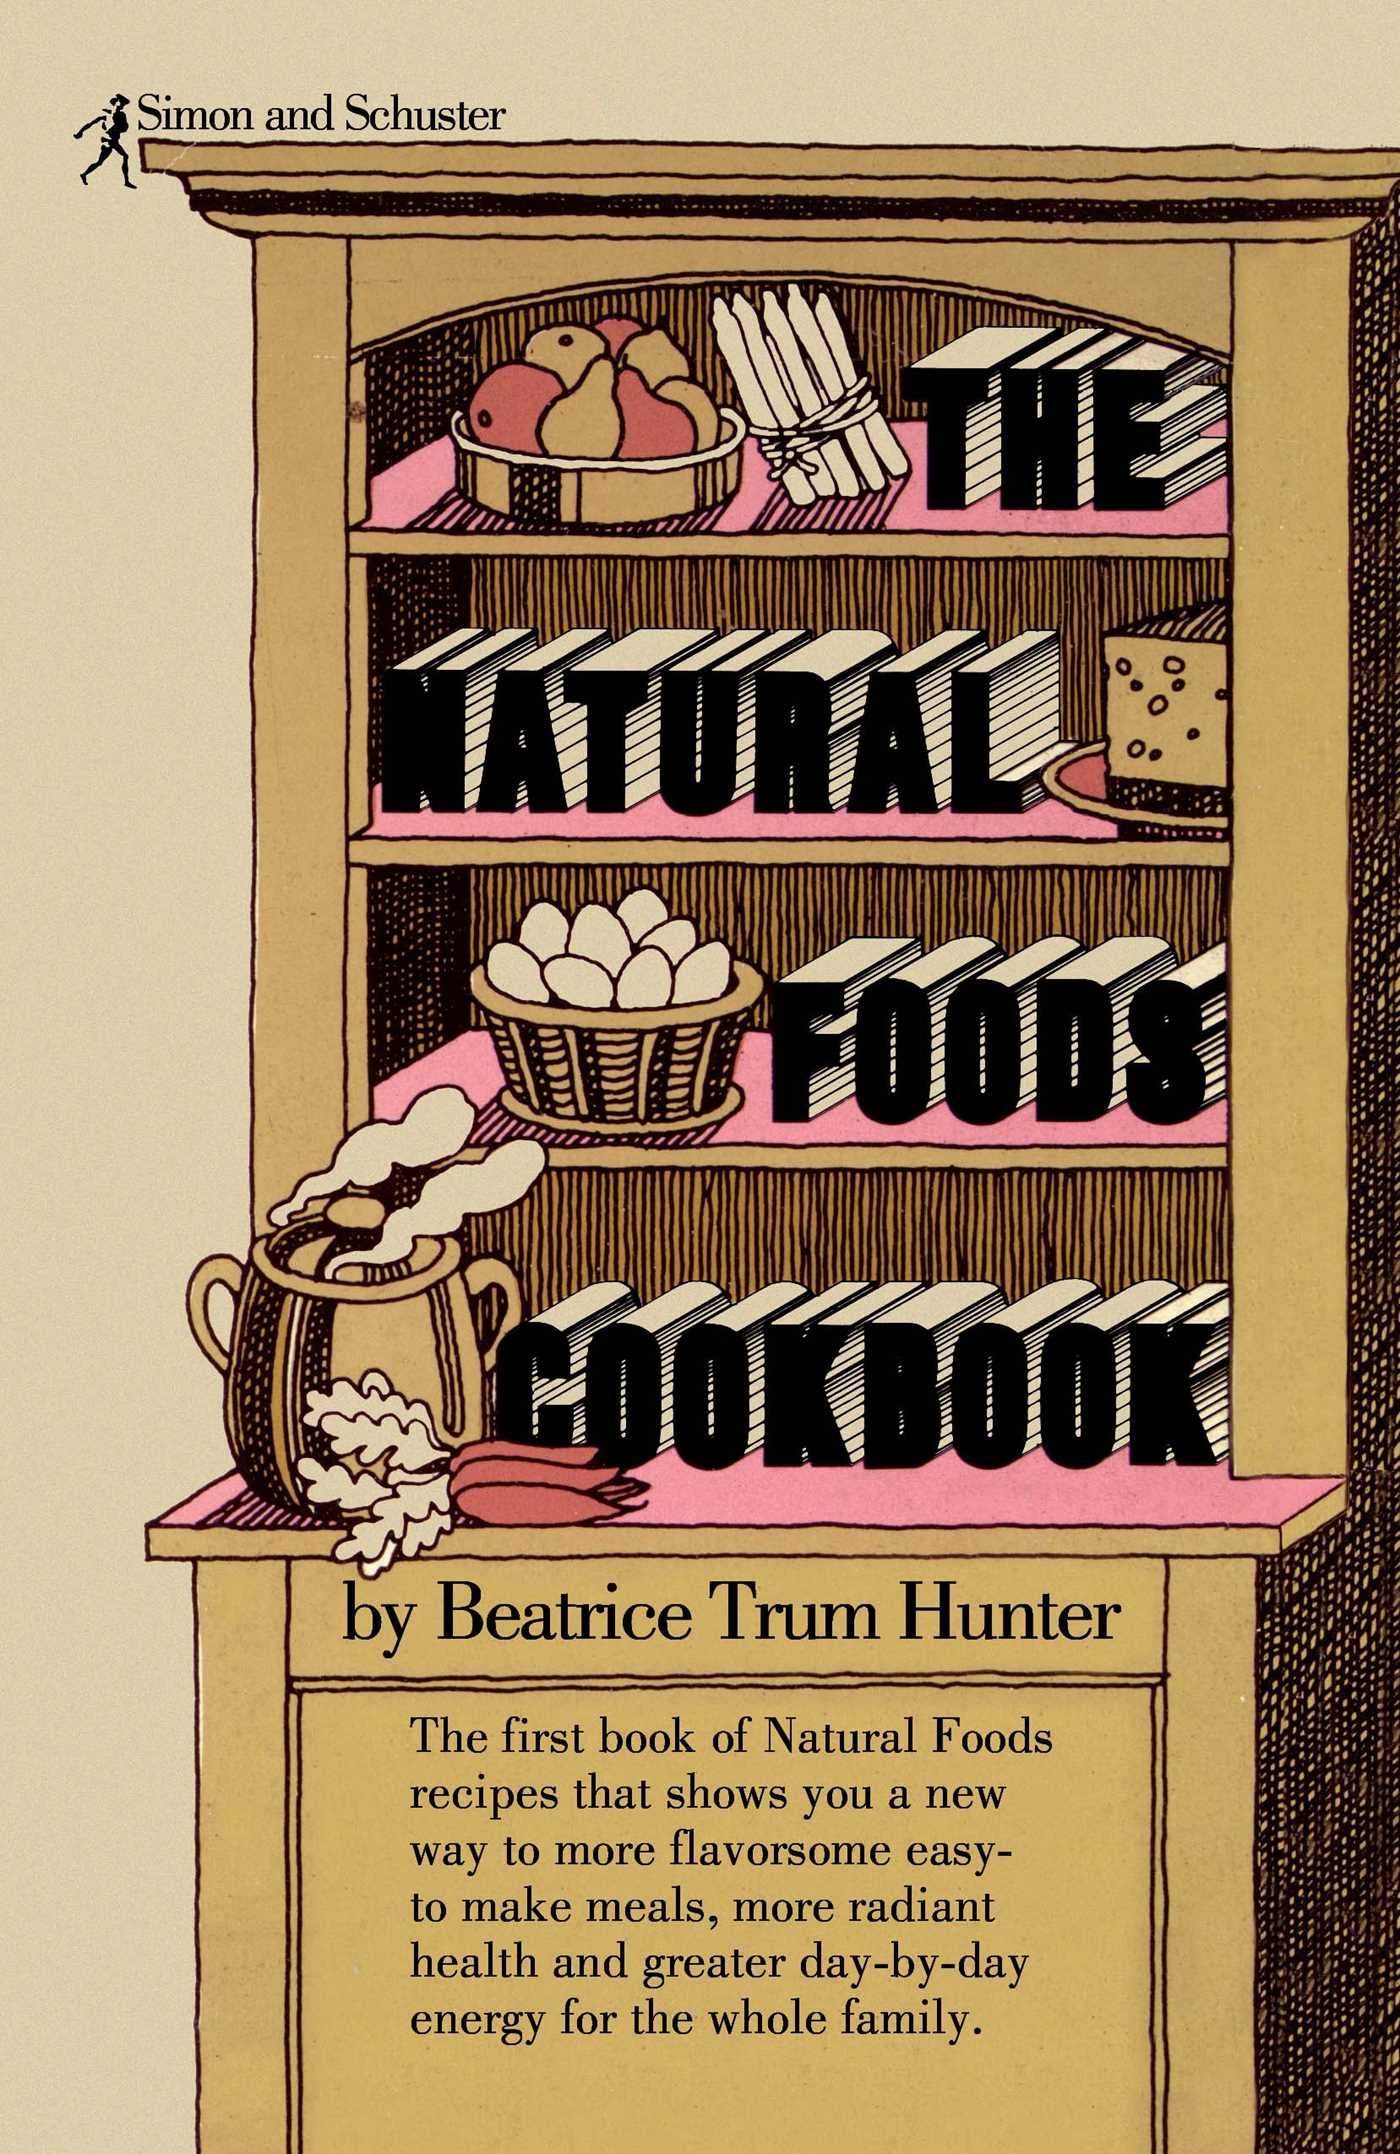 Natural foods cookbook 9780671204211 hr